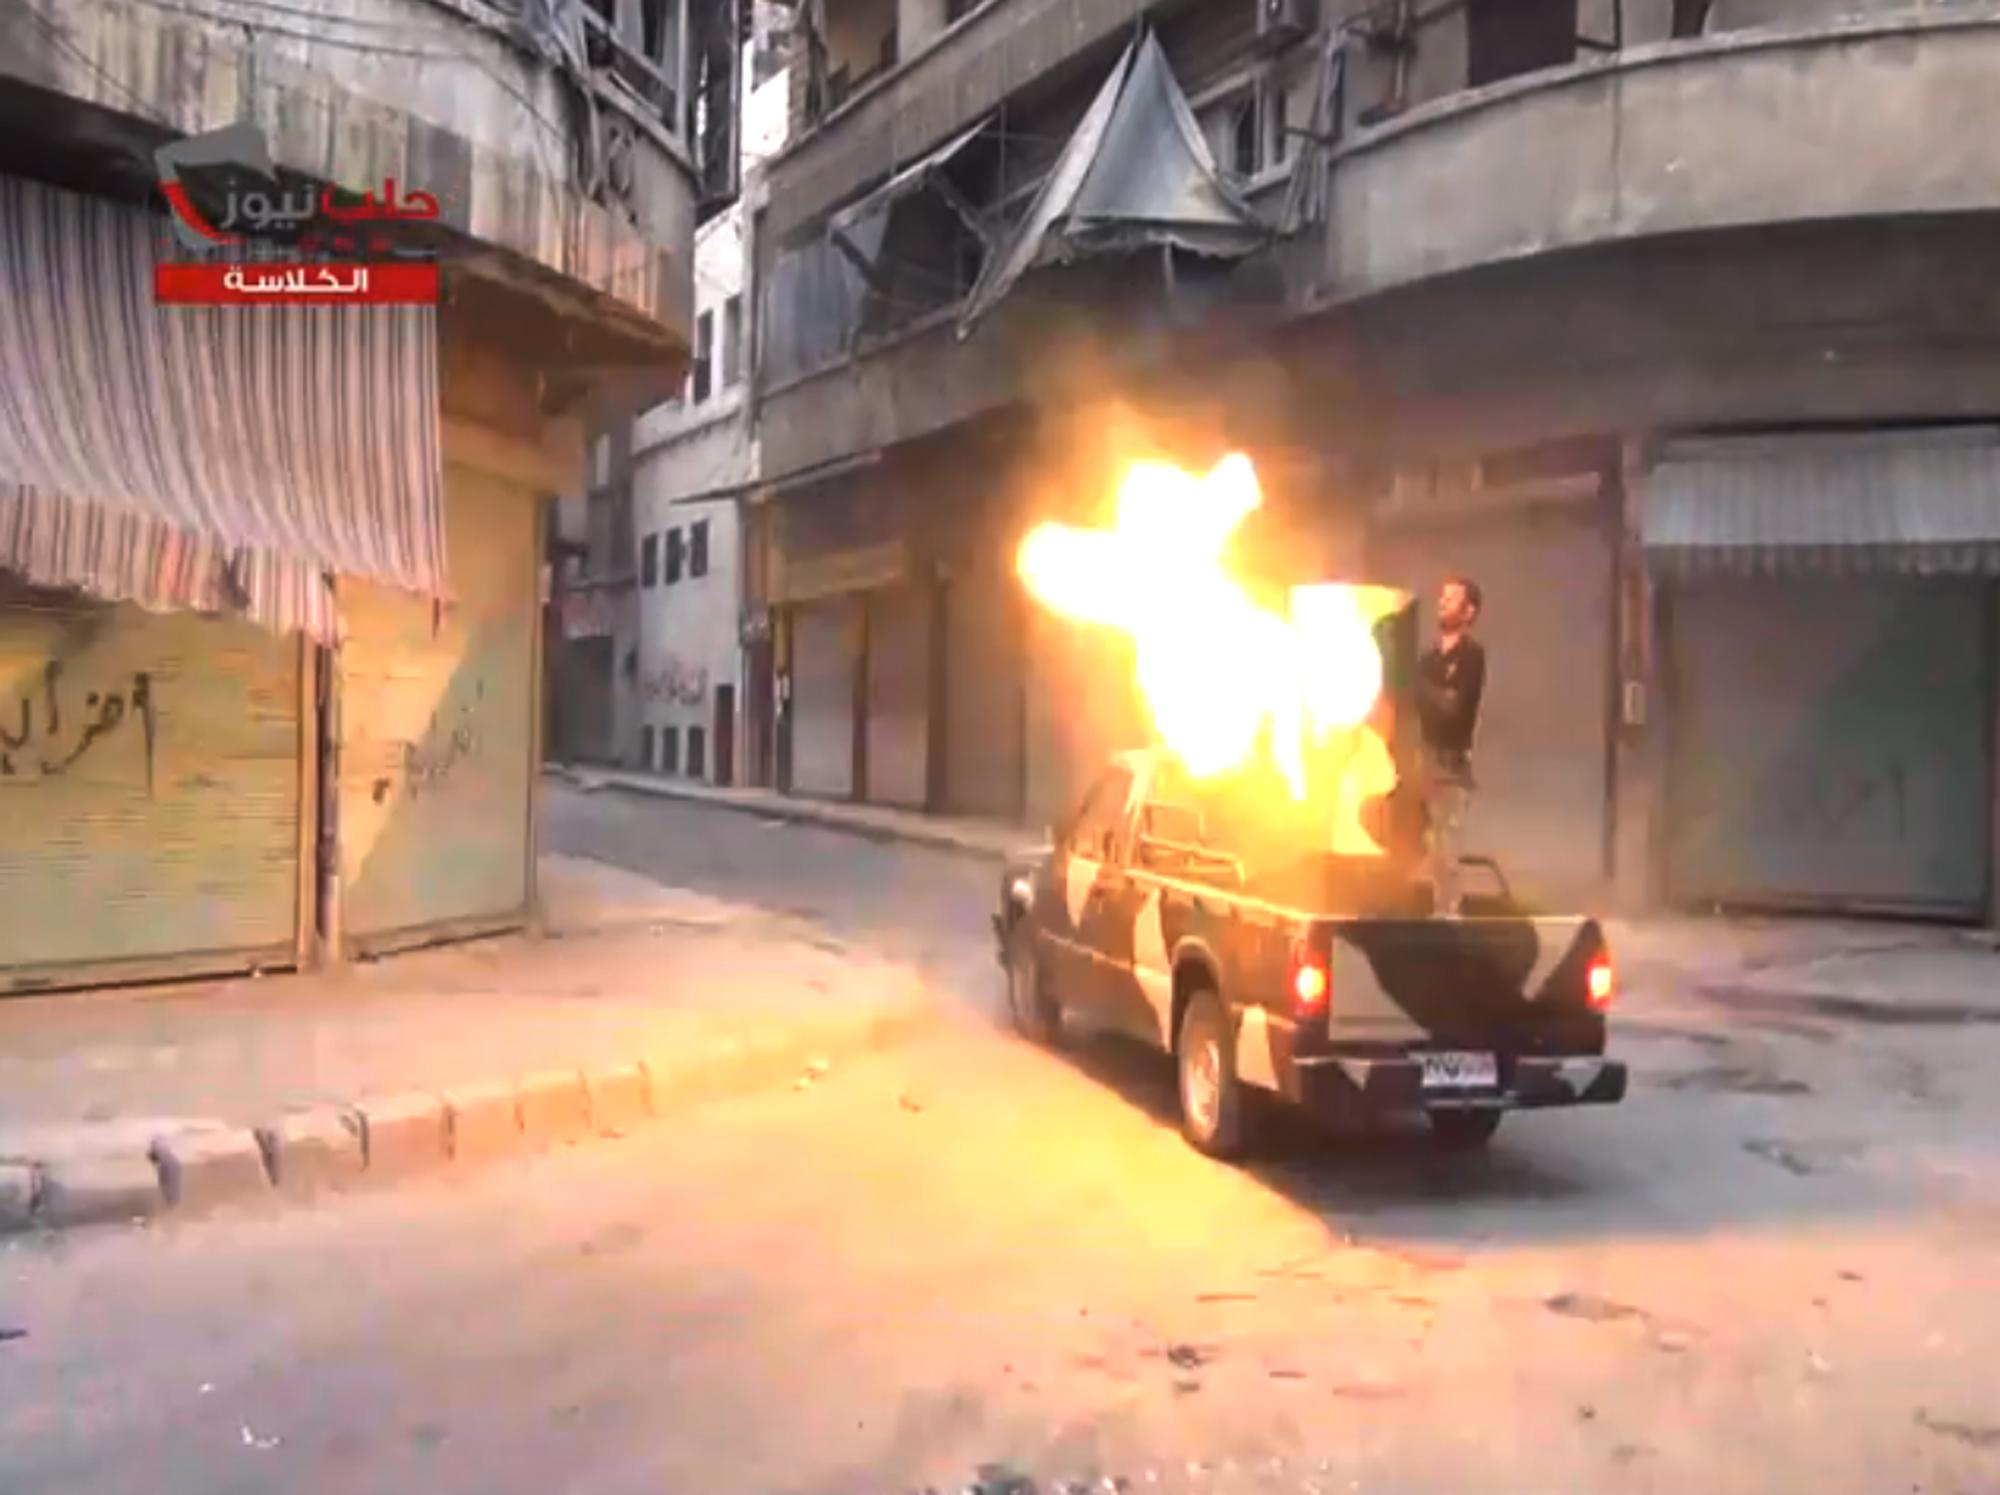 """In this image taken from video obtained from the Shaam News Network, which has been authenticated based on its contents and other AP reporting, fighters from the Free Syrian Army targets one of the bastions of the regime's forces in Aleppo, Syria, Monday July 22, 2013. Syrian rebels seized a strategic village on the edge of the northern city of Aleppo on Monday, activists said, just hours after other opposition fighters sustained some of their heaviest losses in months in battles to the south near the capital, Damascus. Logo reads, """"Aleppo News – al-Kalasa."""" (AP Photo/Shaam News Network via AP video)"""